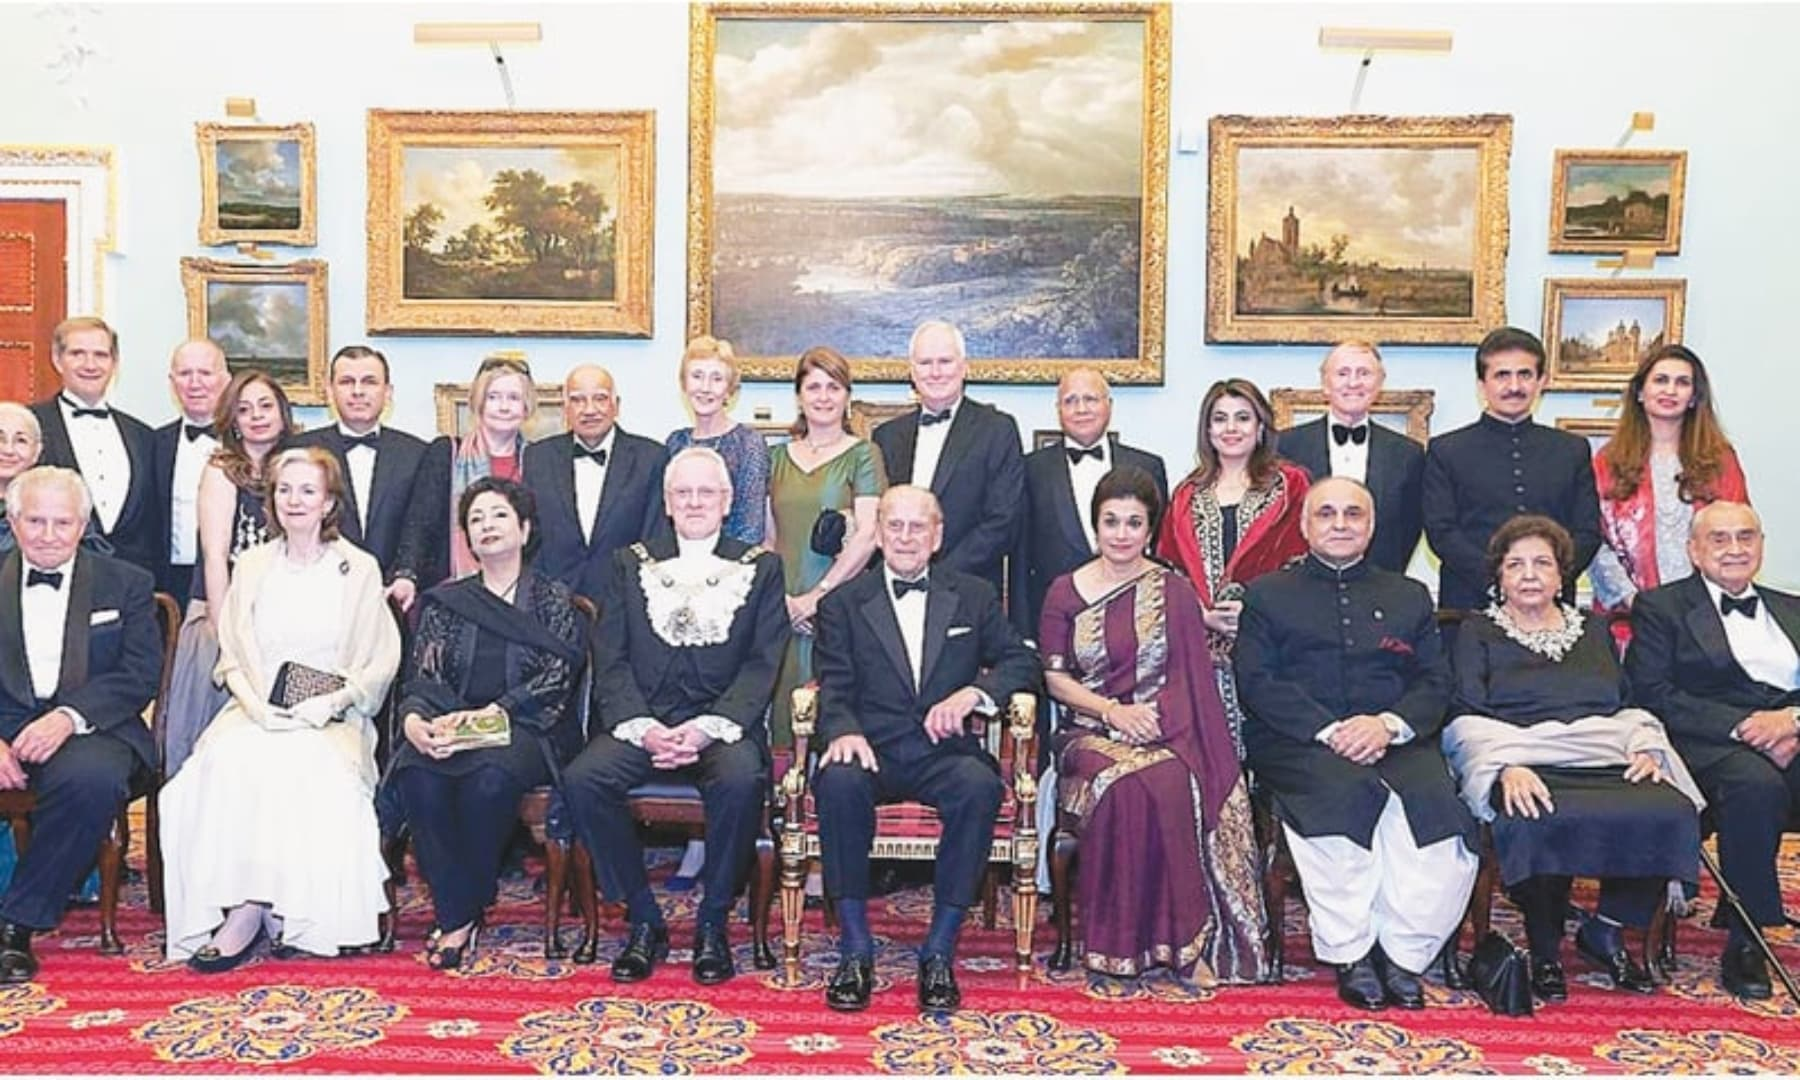 A group photograph of the Duke of Edinburgh, co-patron of the Pakistan Society, during a dinner marking the 70th anniversary of the founding of Pakistan and establishment of UK-Pakistan diplomatic relations at the Mansion House. — APP/File